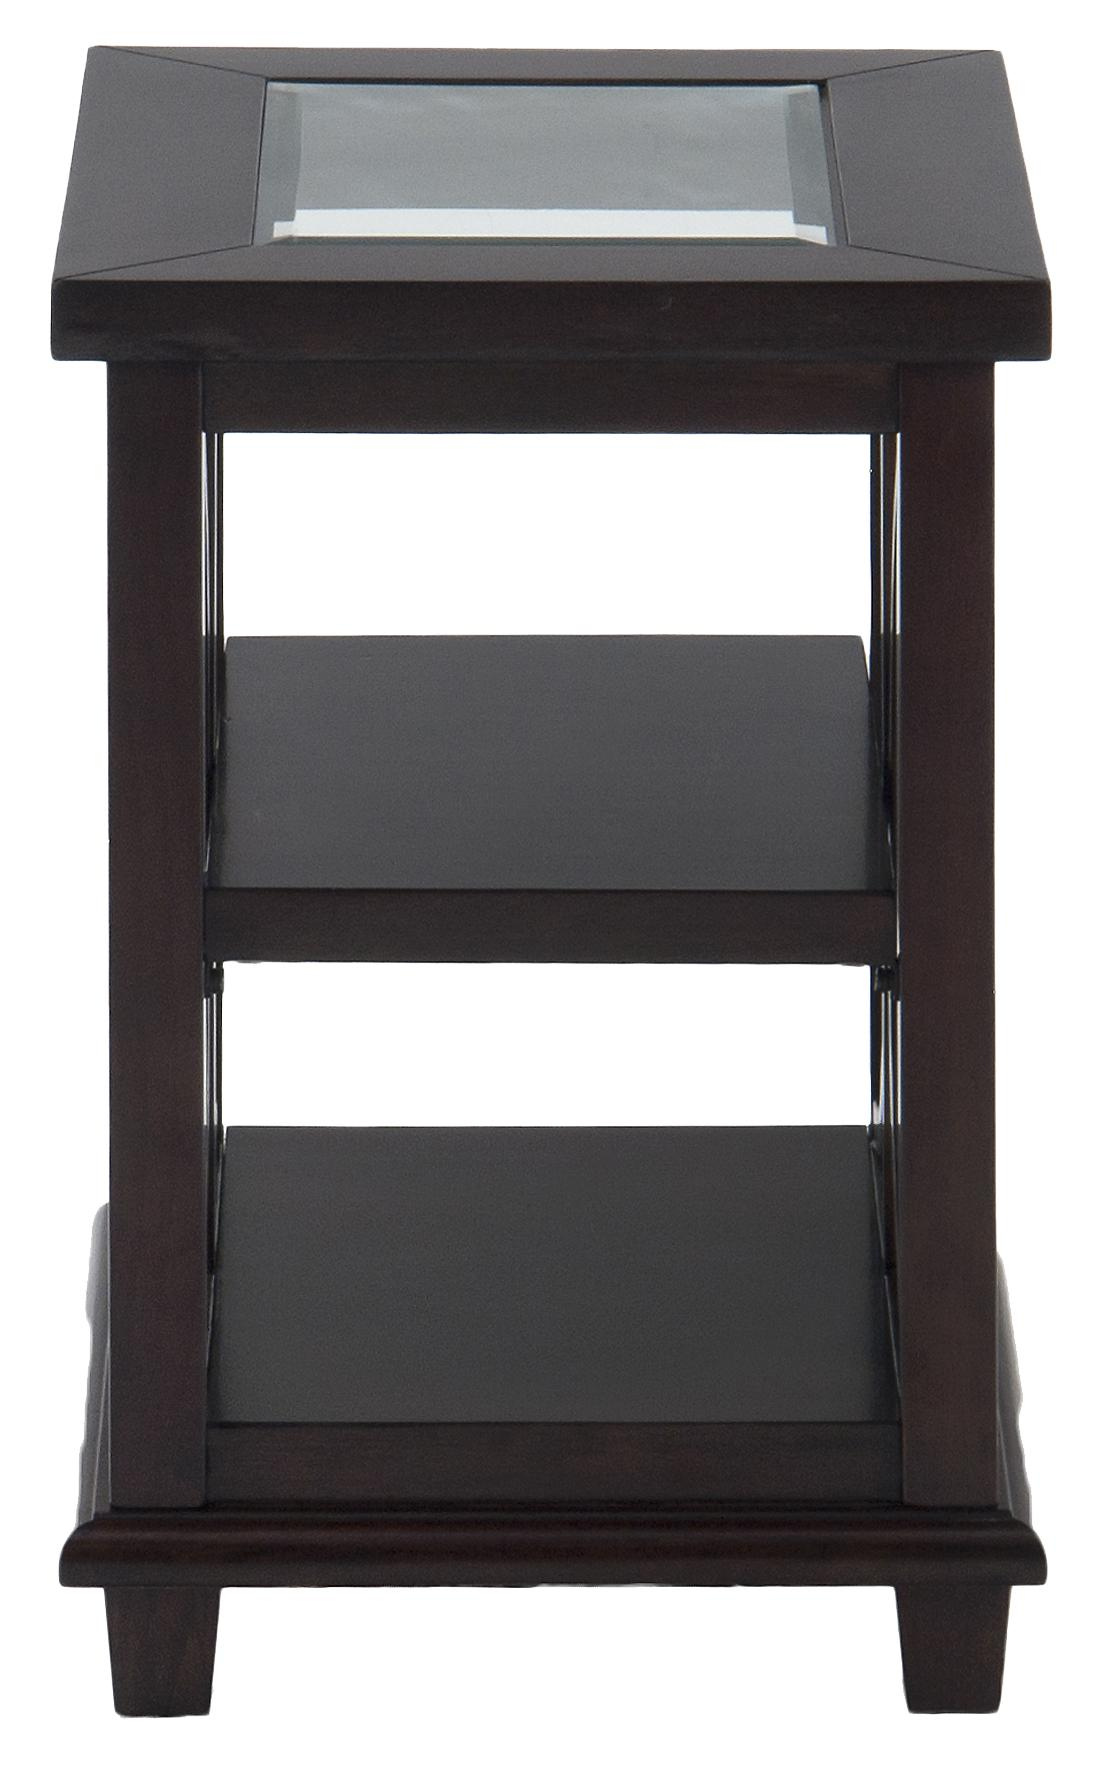 Panama Brown Chairside Table w/ Glass Top by Jofran at Westrich Furniture & Appliances